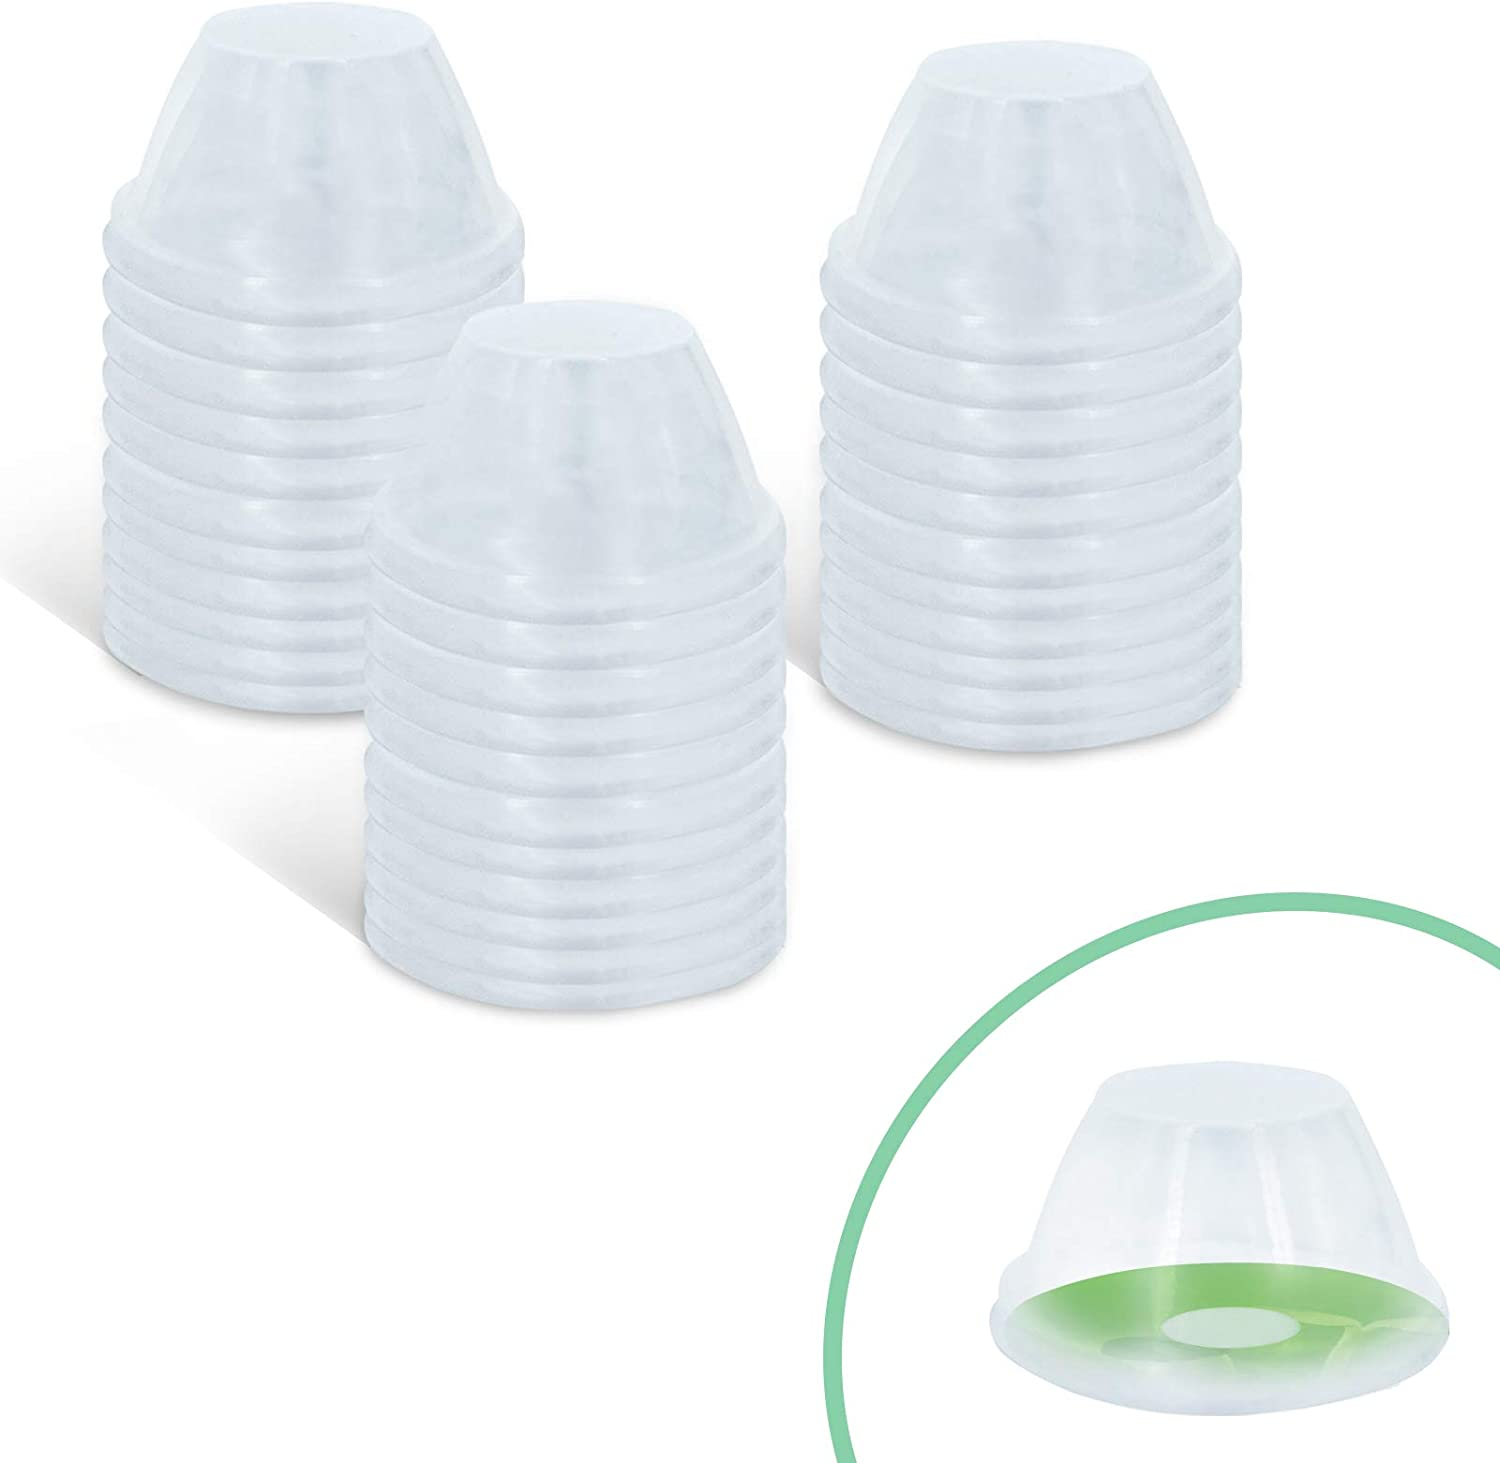 Grow Domes (50-Pack), Indoor Hydroponic Garden Accessories for use with AeroGarden